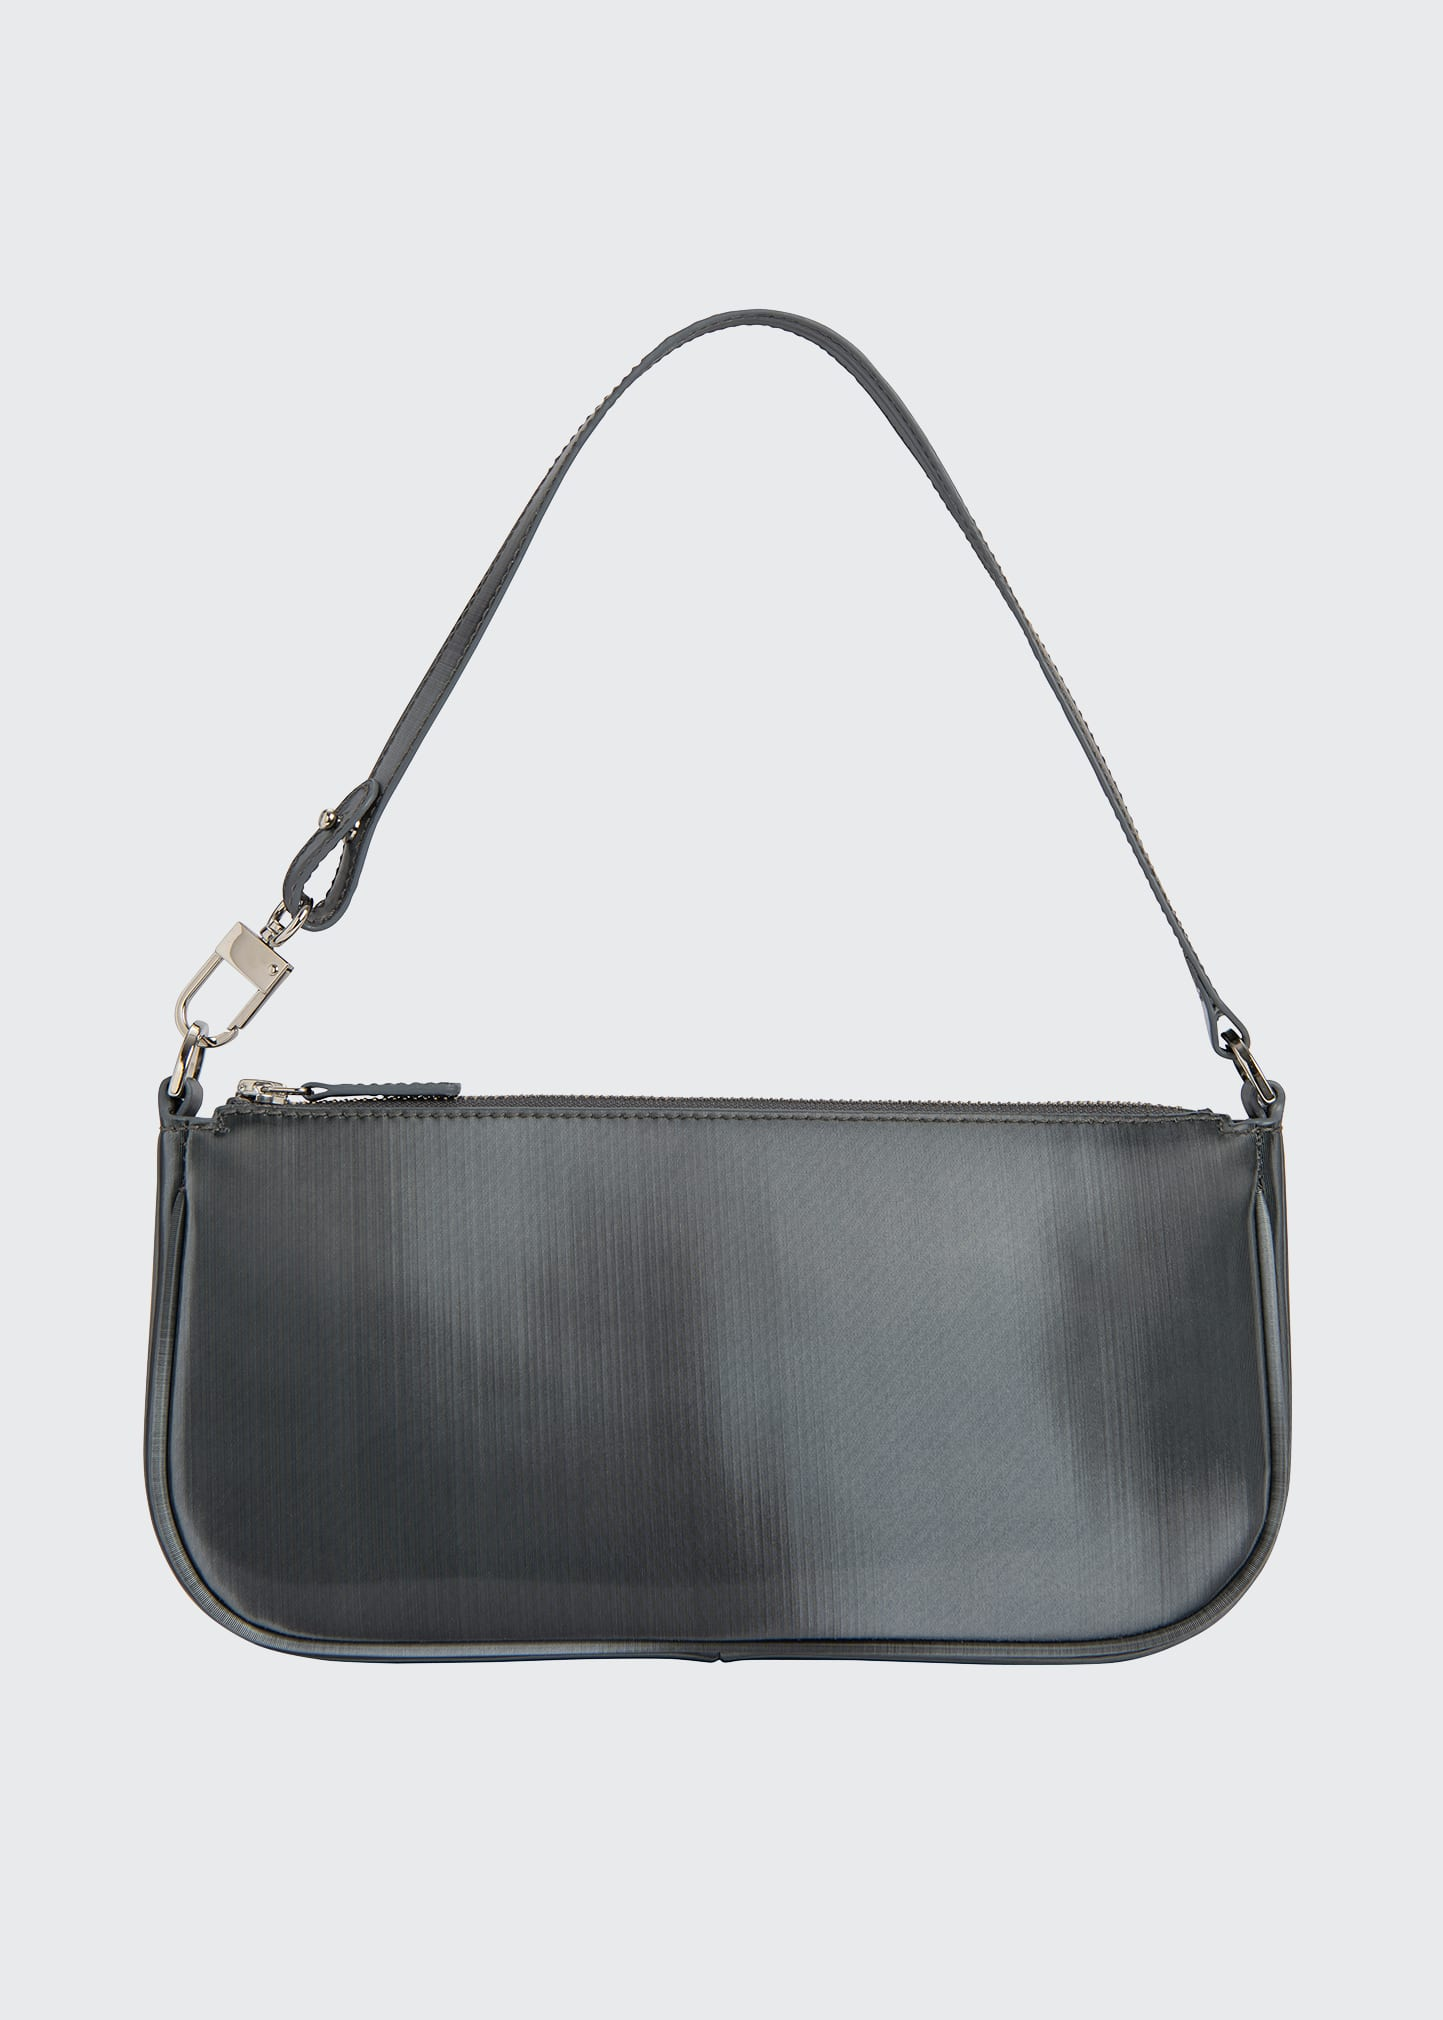 Rachel Leather Shoulder Bag by By Far, available on bergdorfgoodman.com for $440 Kendall Jenner Bags Exact Product